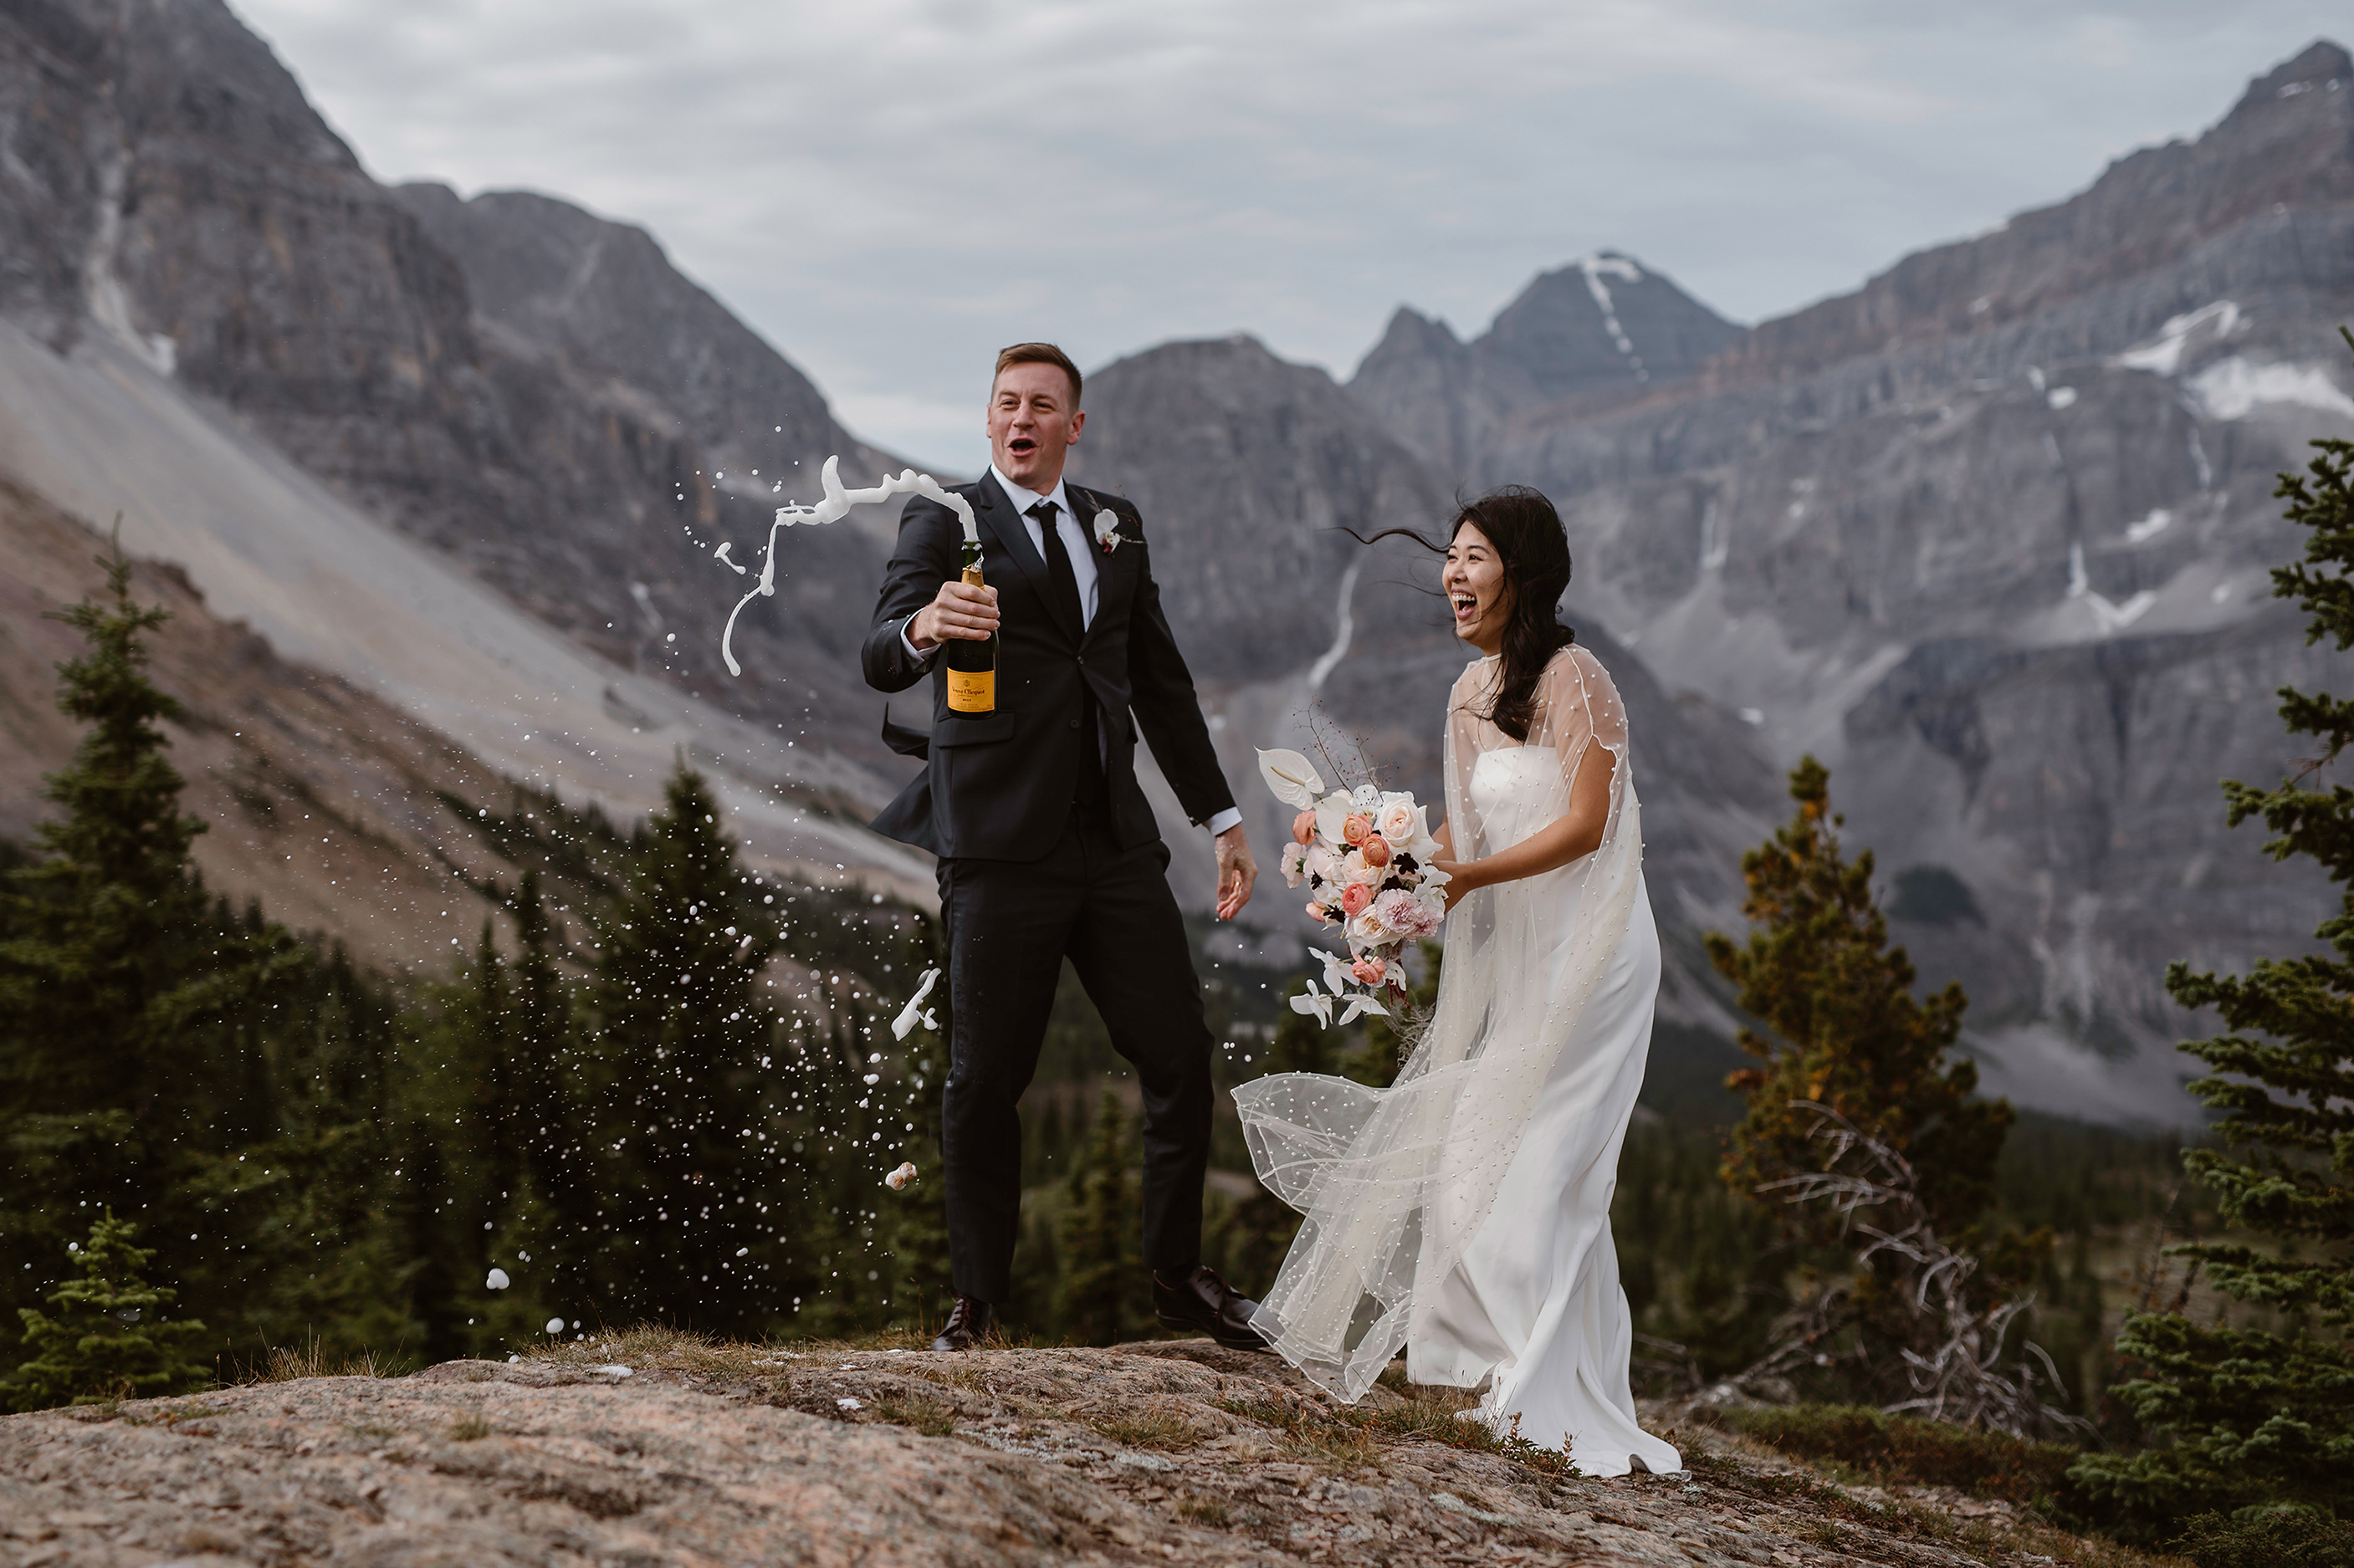 Champagne toast at Lake Moraine on a cloudy day - photo by Virginia and Evan